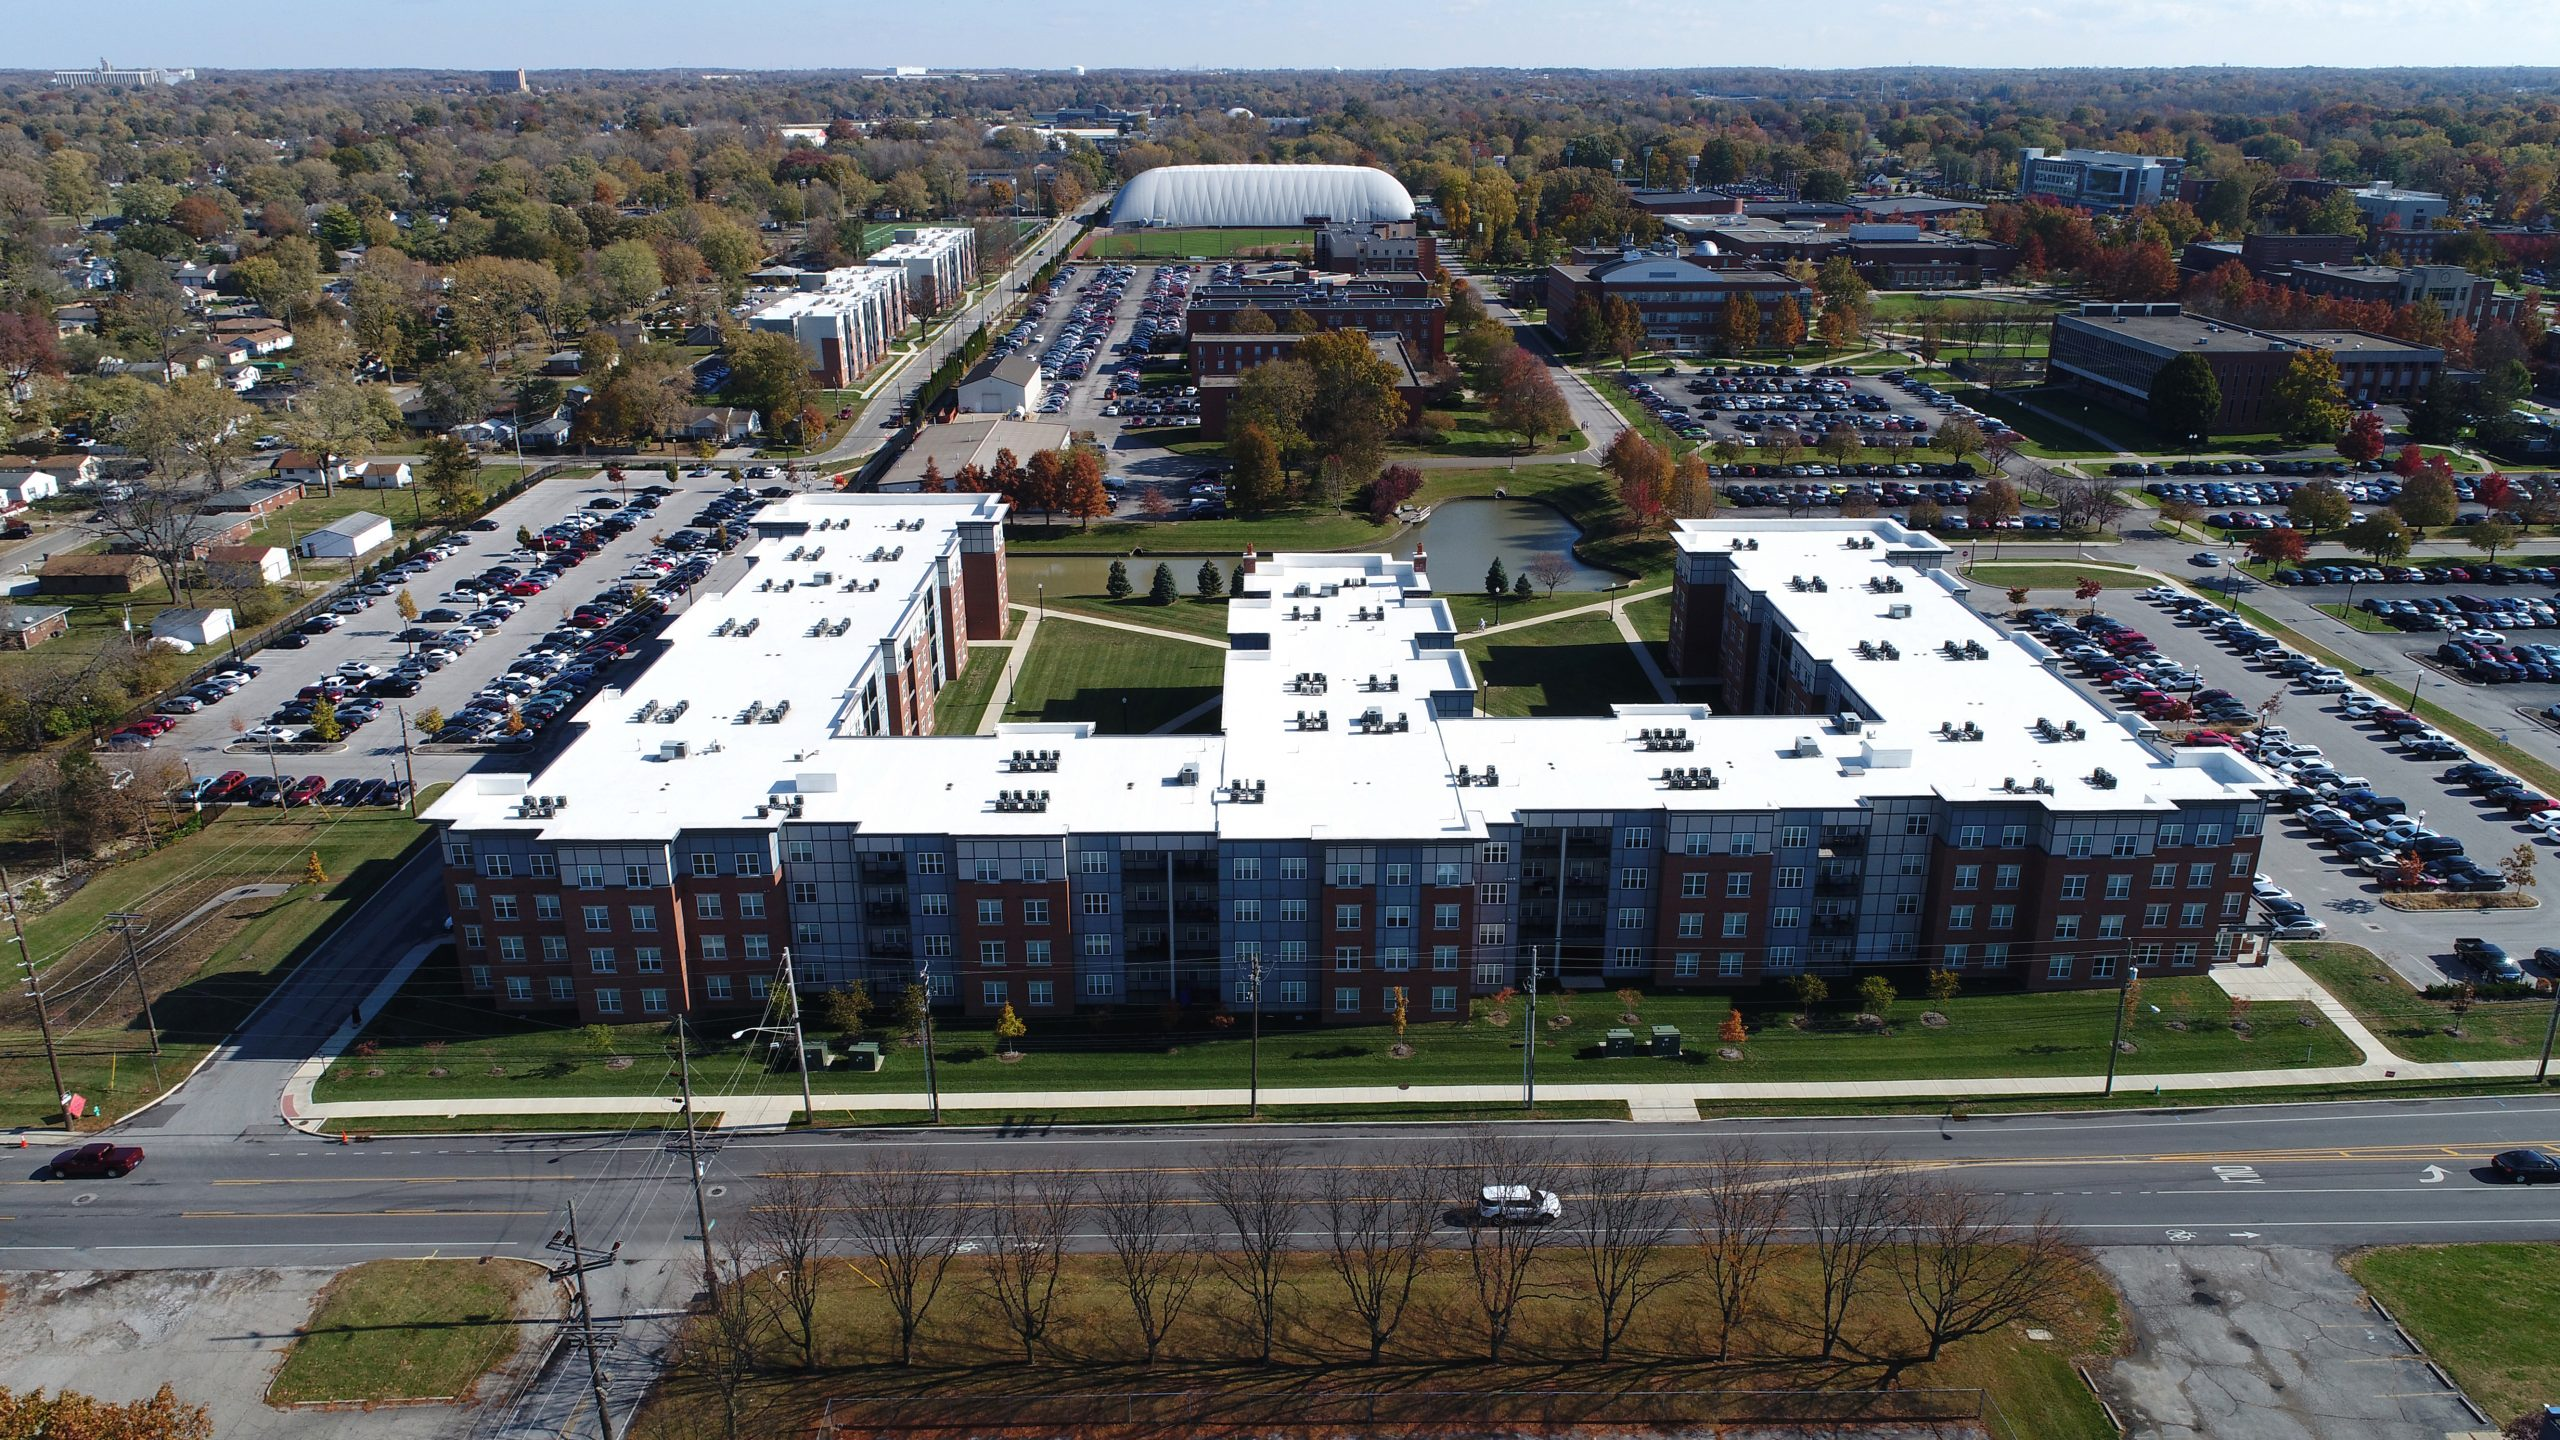 university of indiana commercial roofing project by ce reeve roofing in Indiana